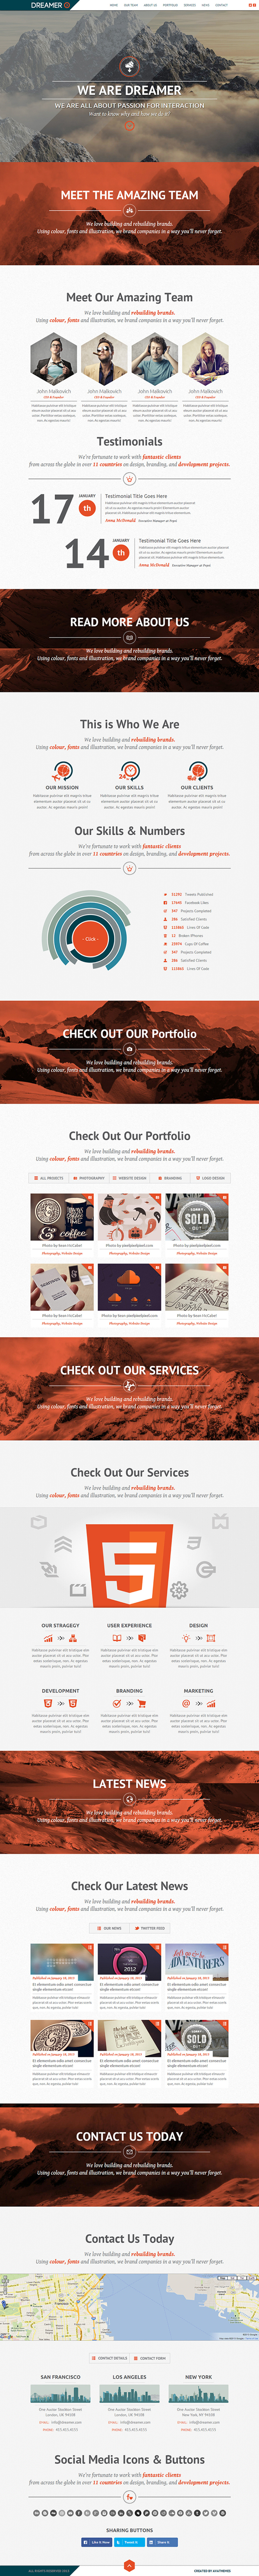 Dreamer Responsive One Page Parallax Template By Avathemes Via